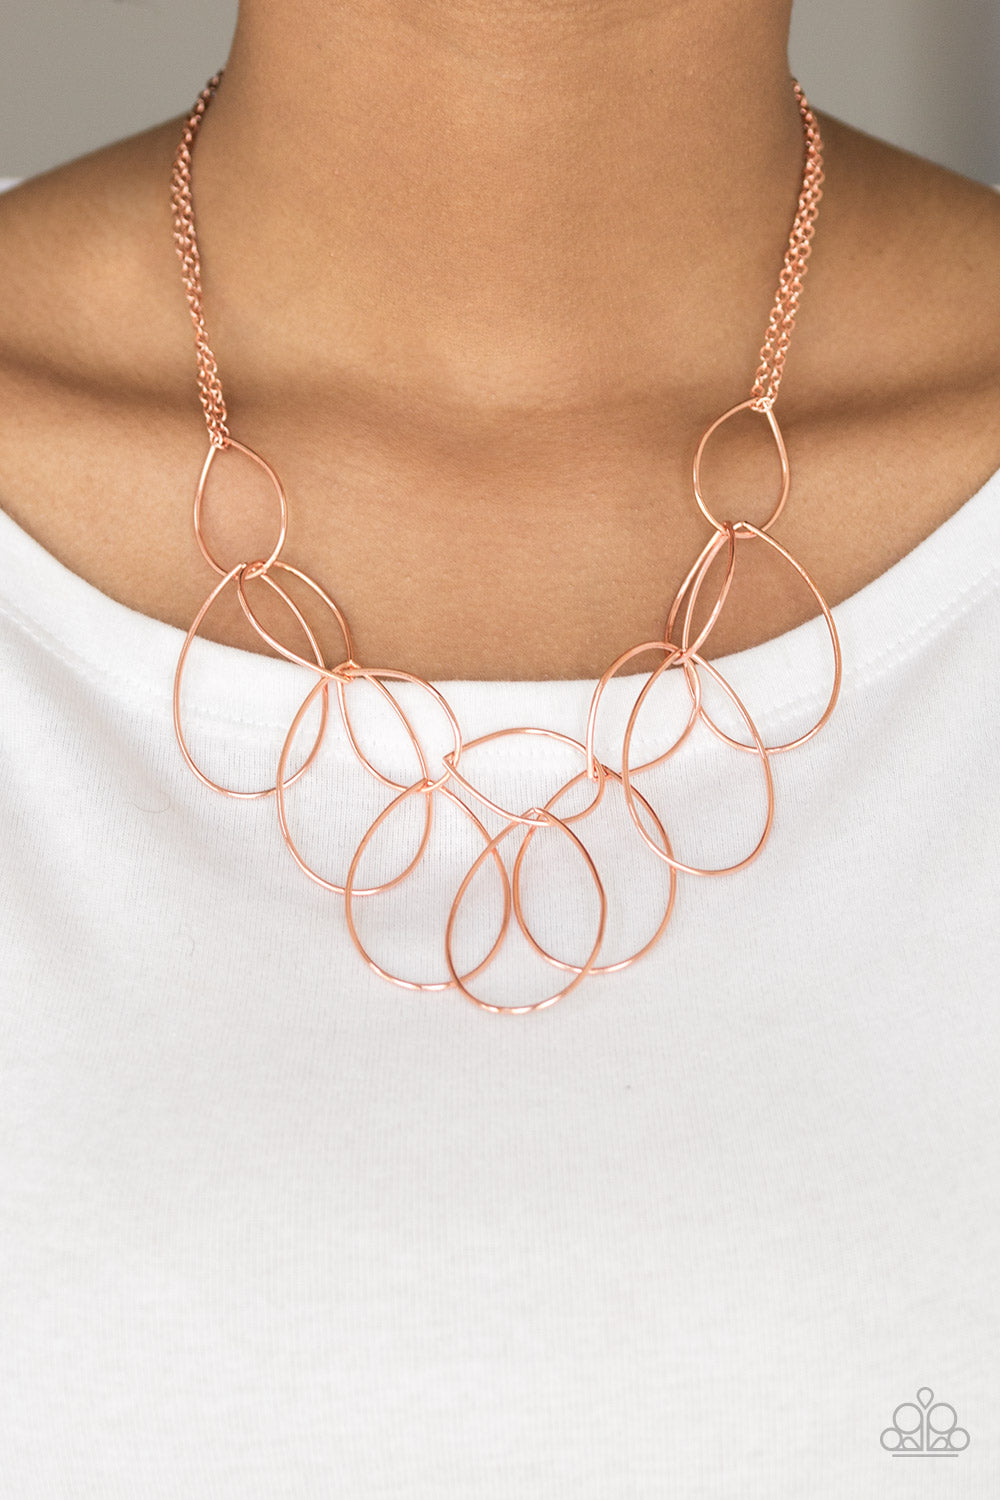 Top - TEAR Fashion - Copper Necklace 1107N